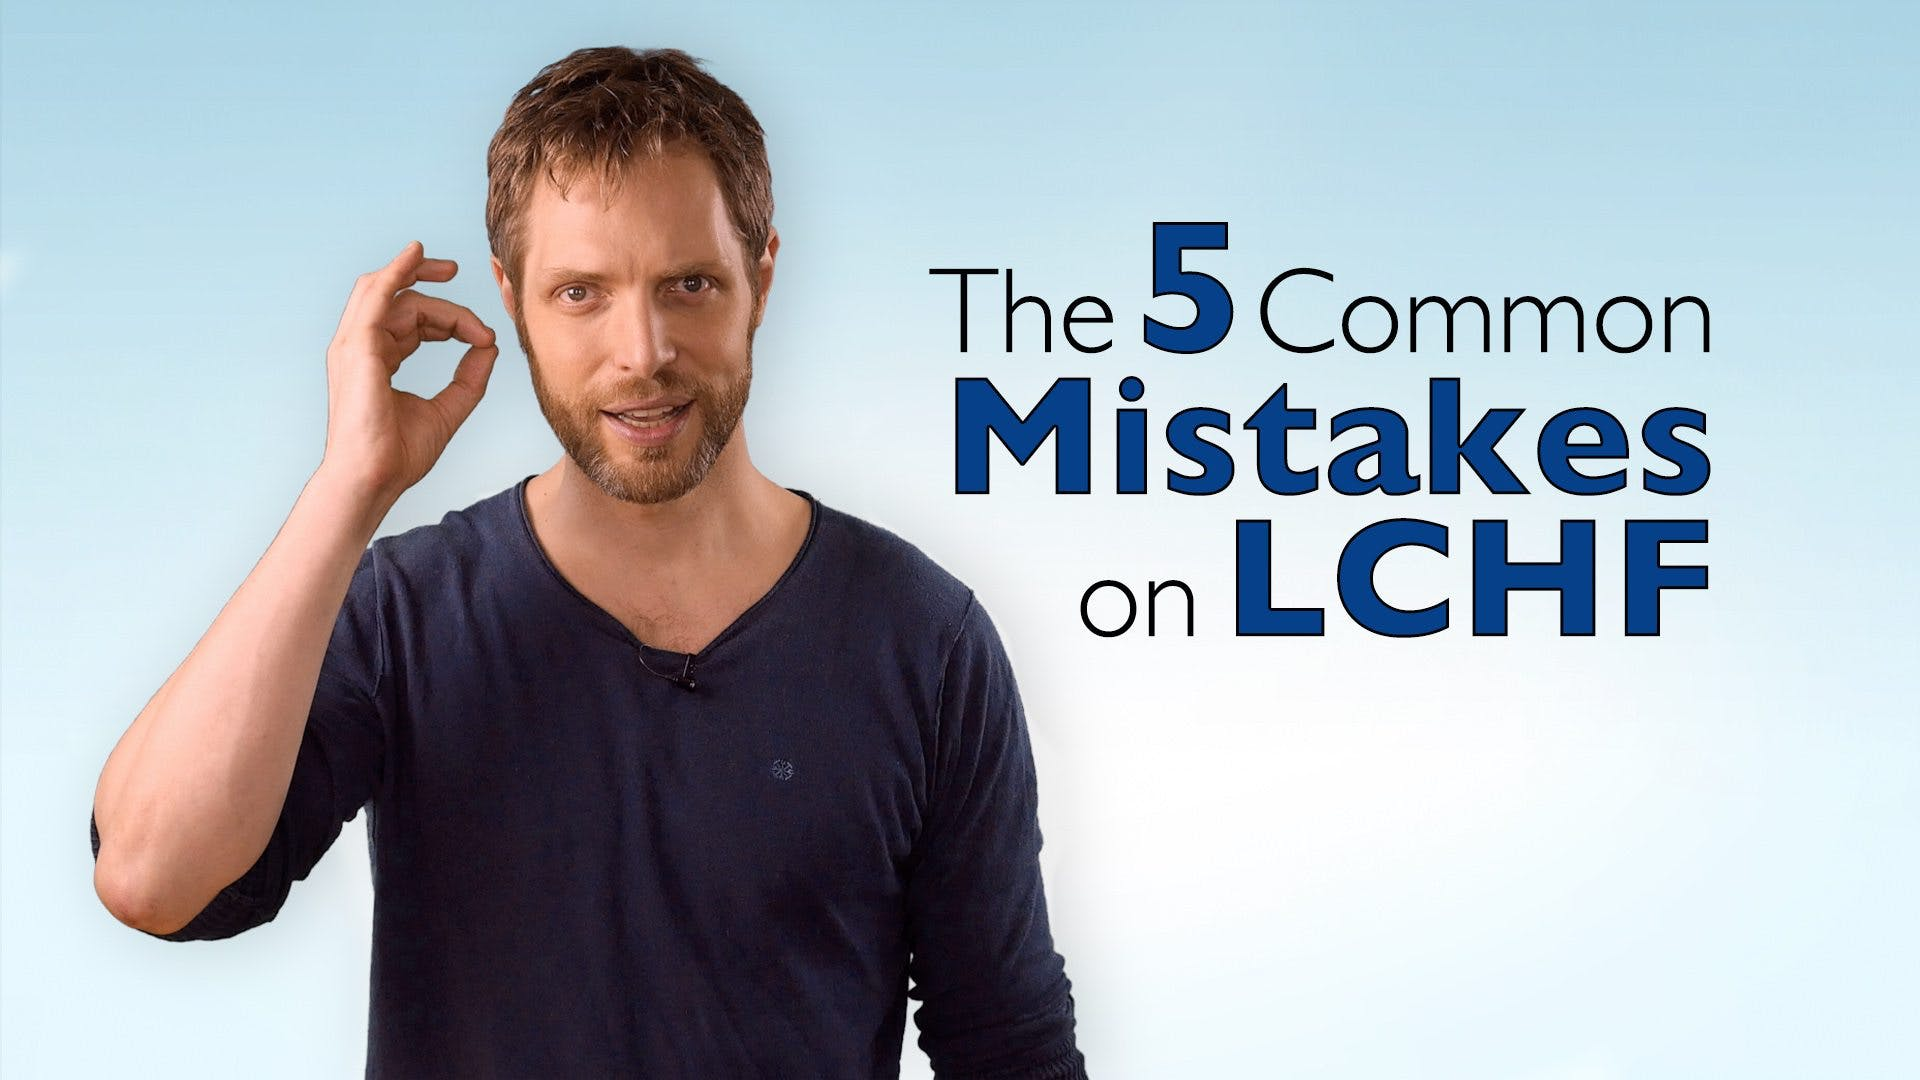 The 5 common mistakes on LCHF